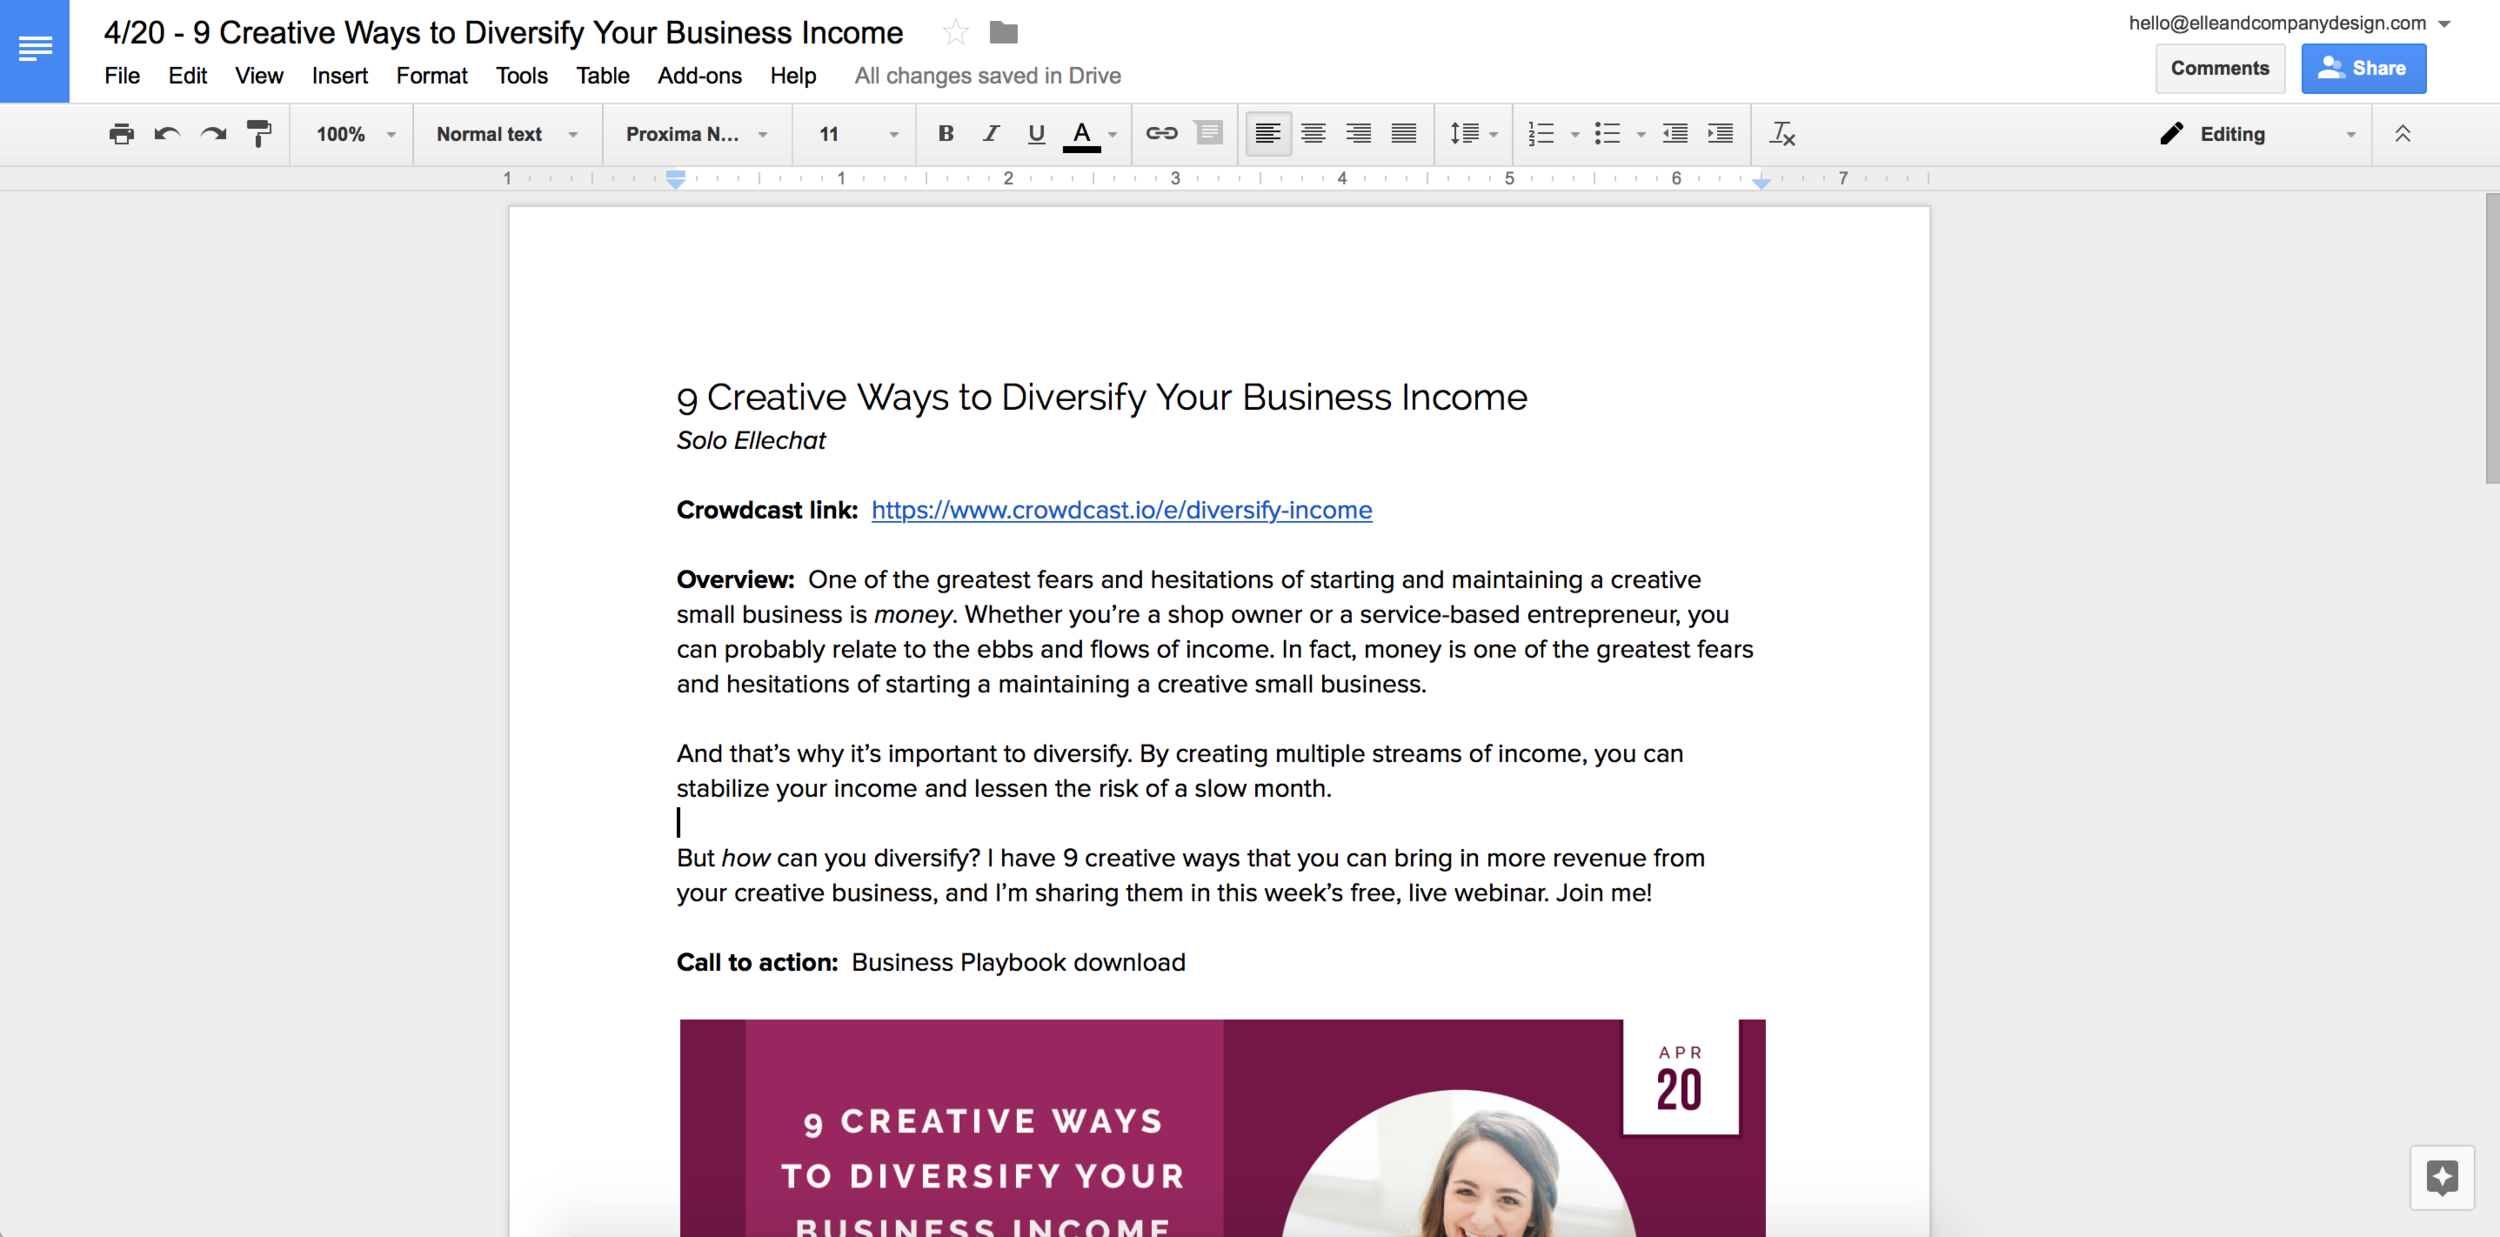 12 Google Doc Templates to Make Your Business More Efficient | Elle & Company